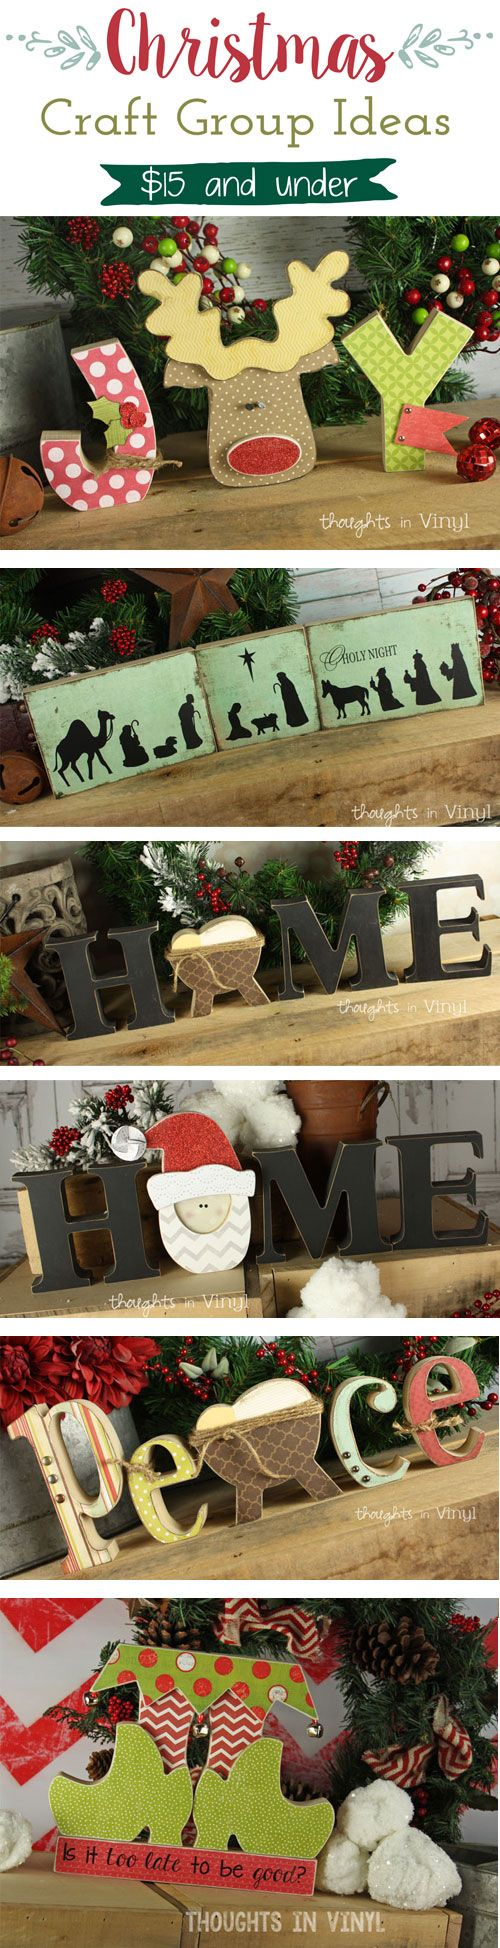 Wood finials for crafts - Christmas Crafts Wooden Letters Great Craft Group Ideas Or Gifts Perfect For Girls